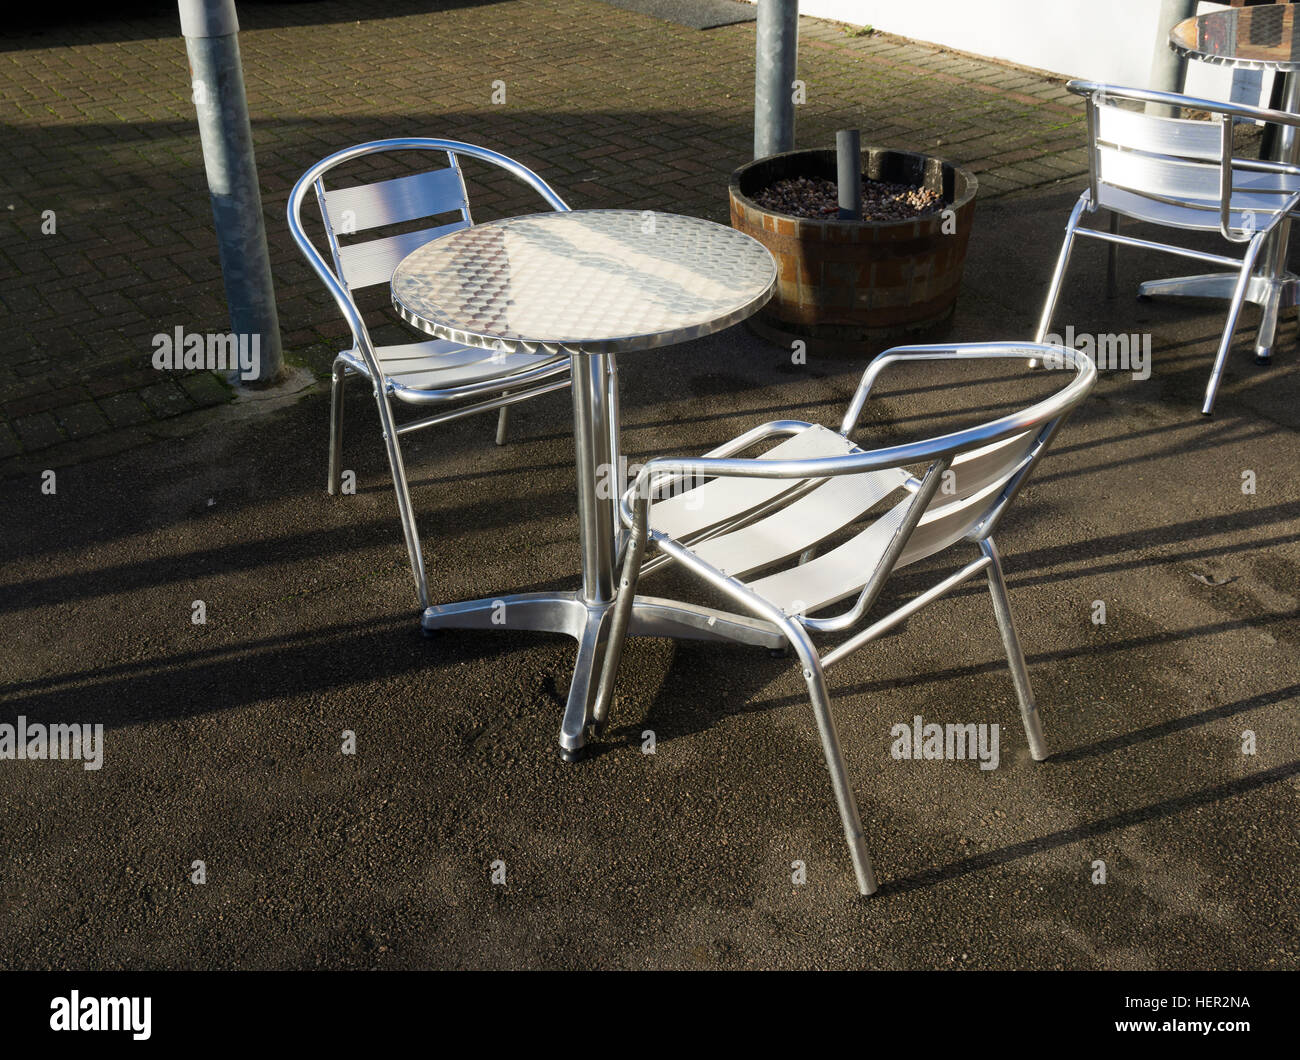 Stainless Metal Café Table And Chairs Outside Coffee Shop Milton Cambridge  Cambridgeshire England 2016   Stock